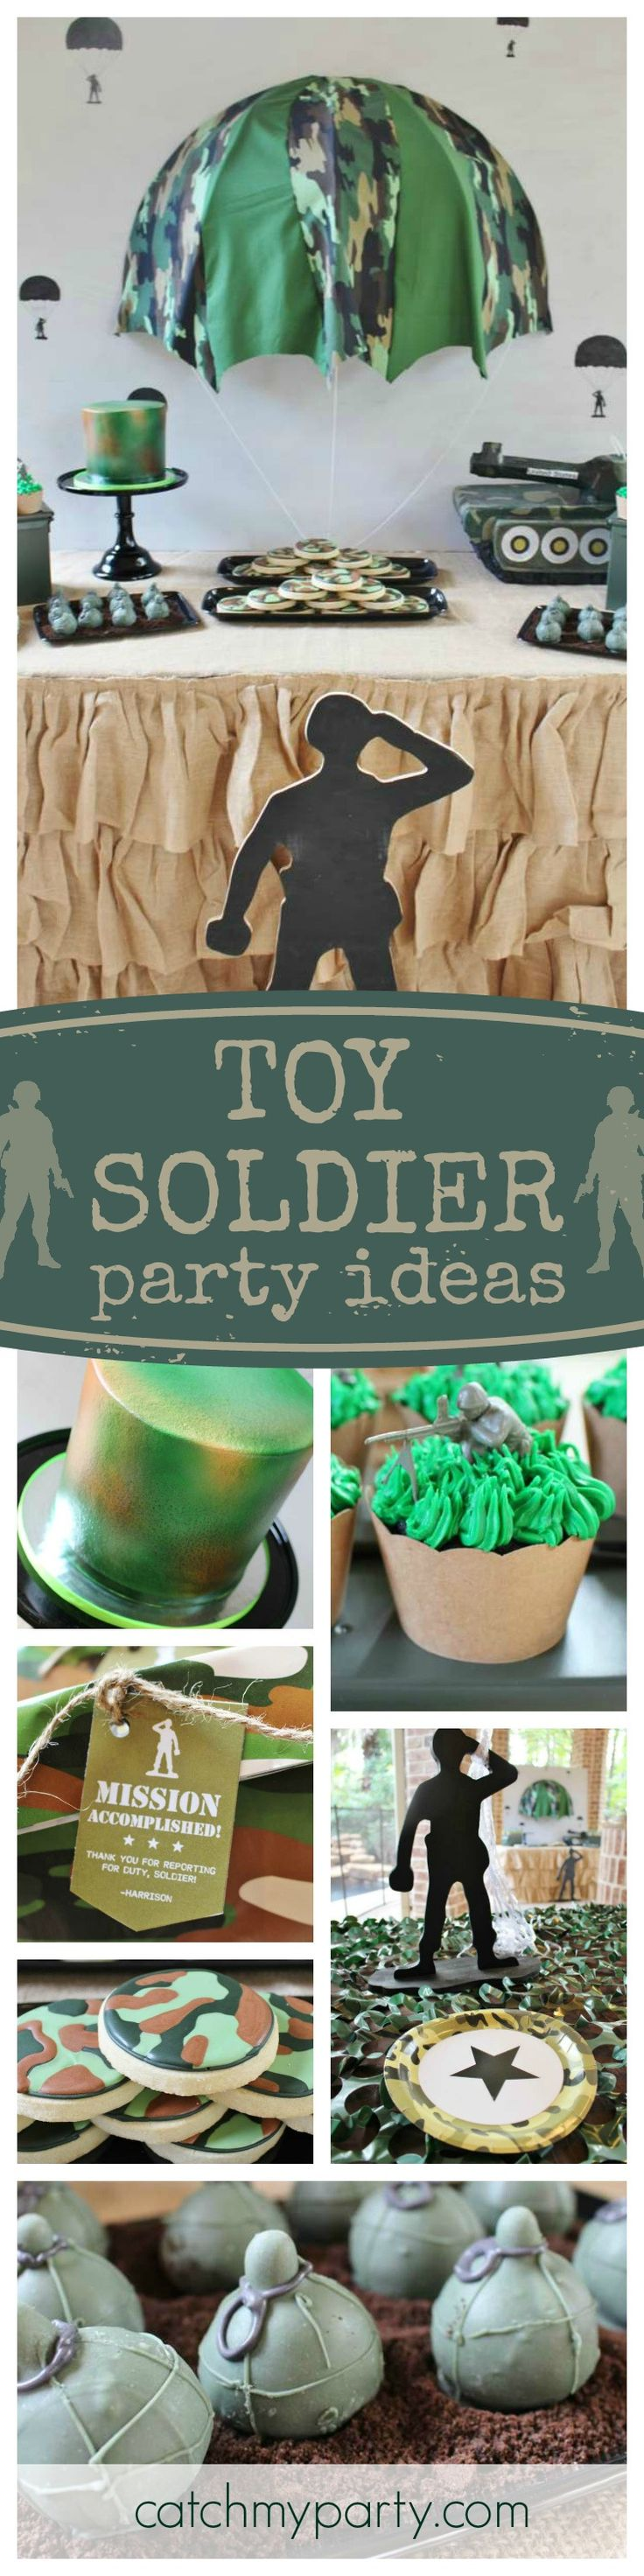 Check out this fantastic Toy Soldier birthday party!! The dessert table and treats are awesome!! See more party ideas and share yours at CatchMyParty.com